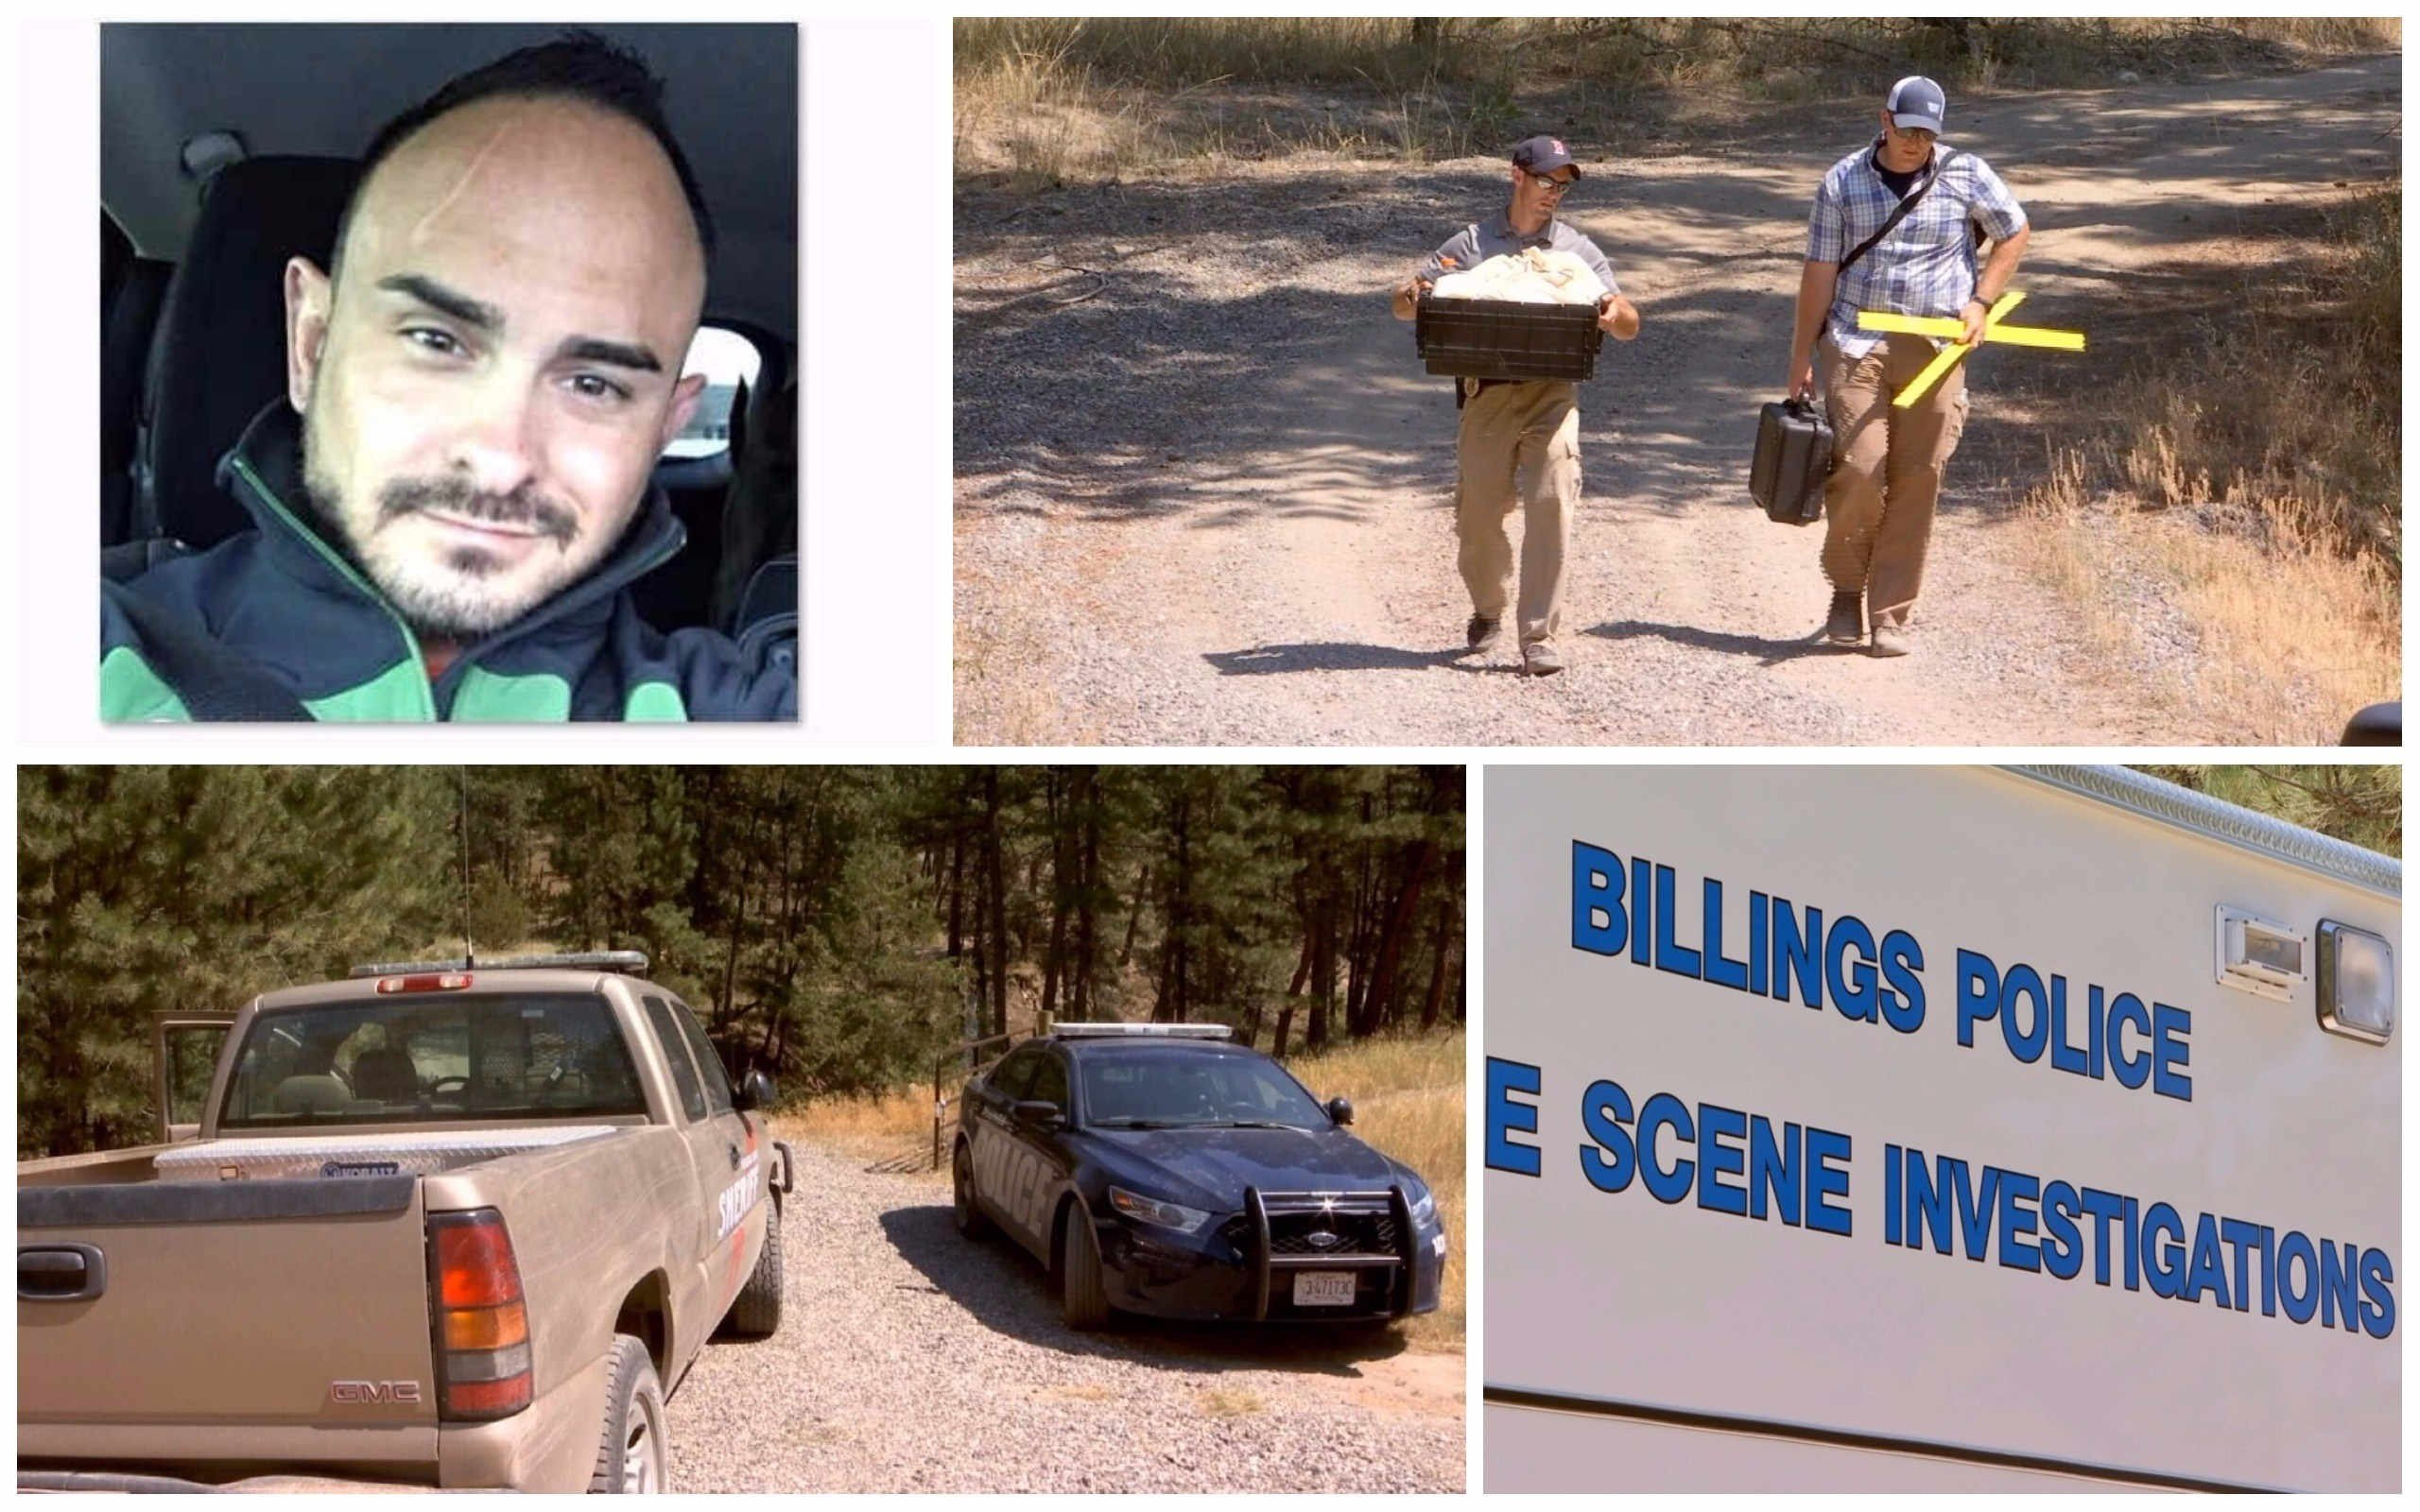 Montana sanders county dixon - Forensic Experts With The University Of Montana Walked Into The Woods Off Juniper Road South Of Roundup To The Scene Of The Shallow Grave Where The Body